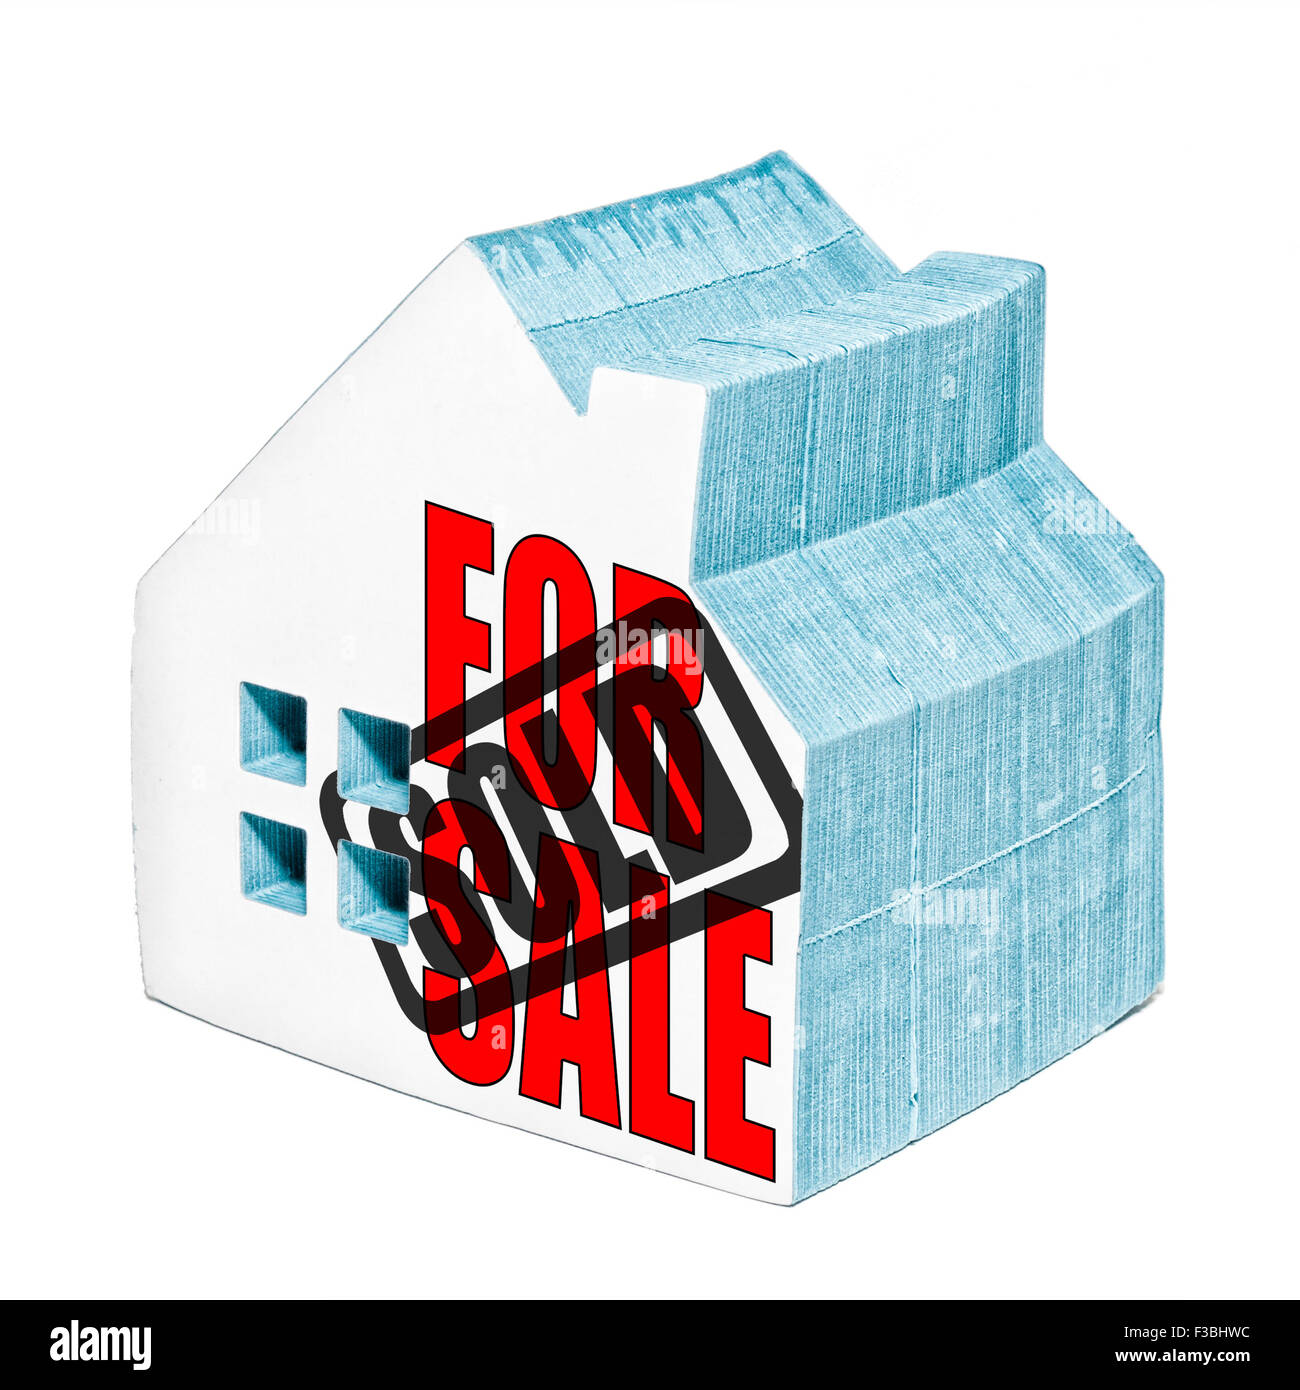 House for sale is sold concept made from a house shaped post it notepad. - Stock Image